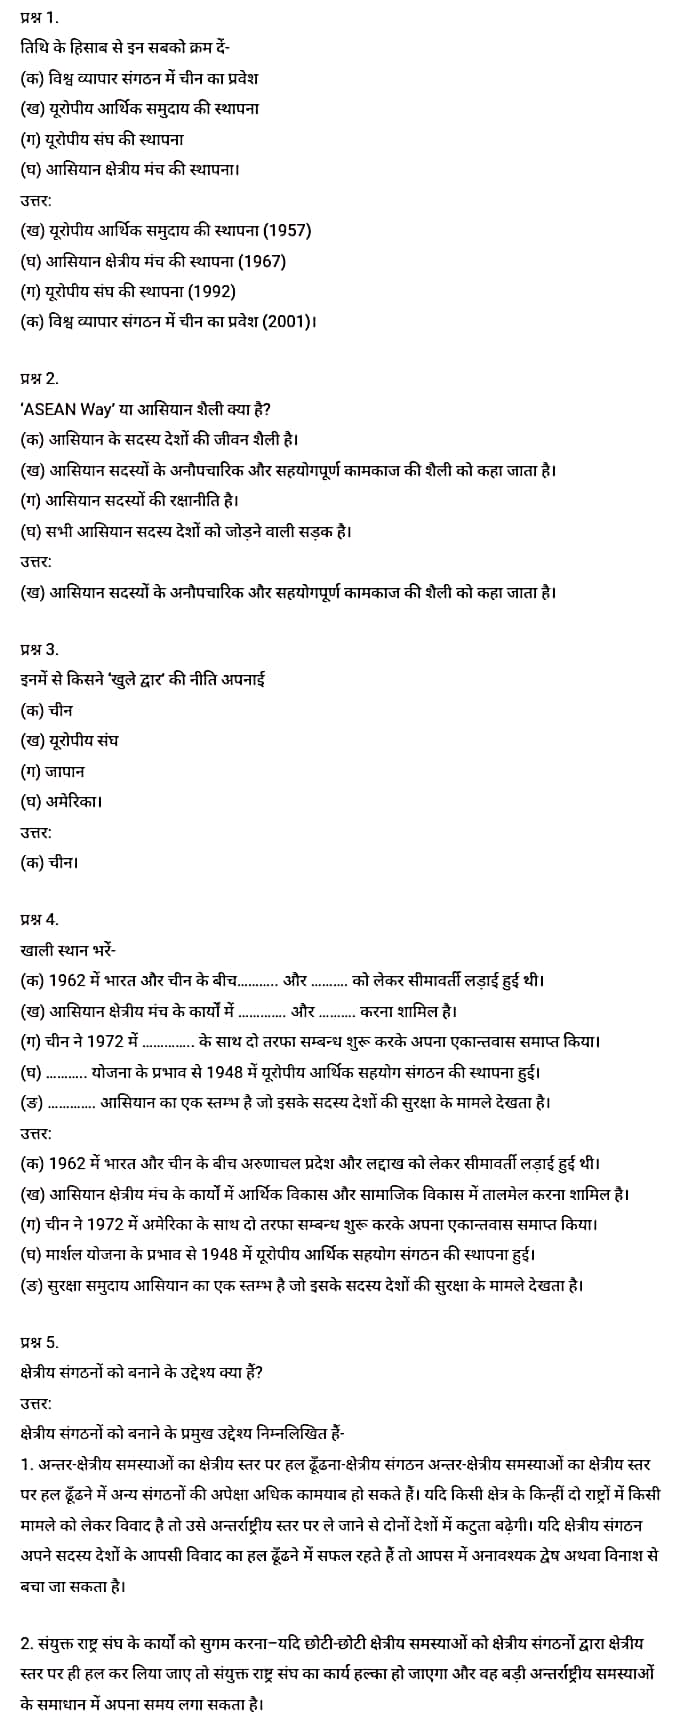 UP Board Solutions for Class 12 Civics Chapter 4 Alternative Centres of Power (सत्ता के वैकल्पिक केंद्र)